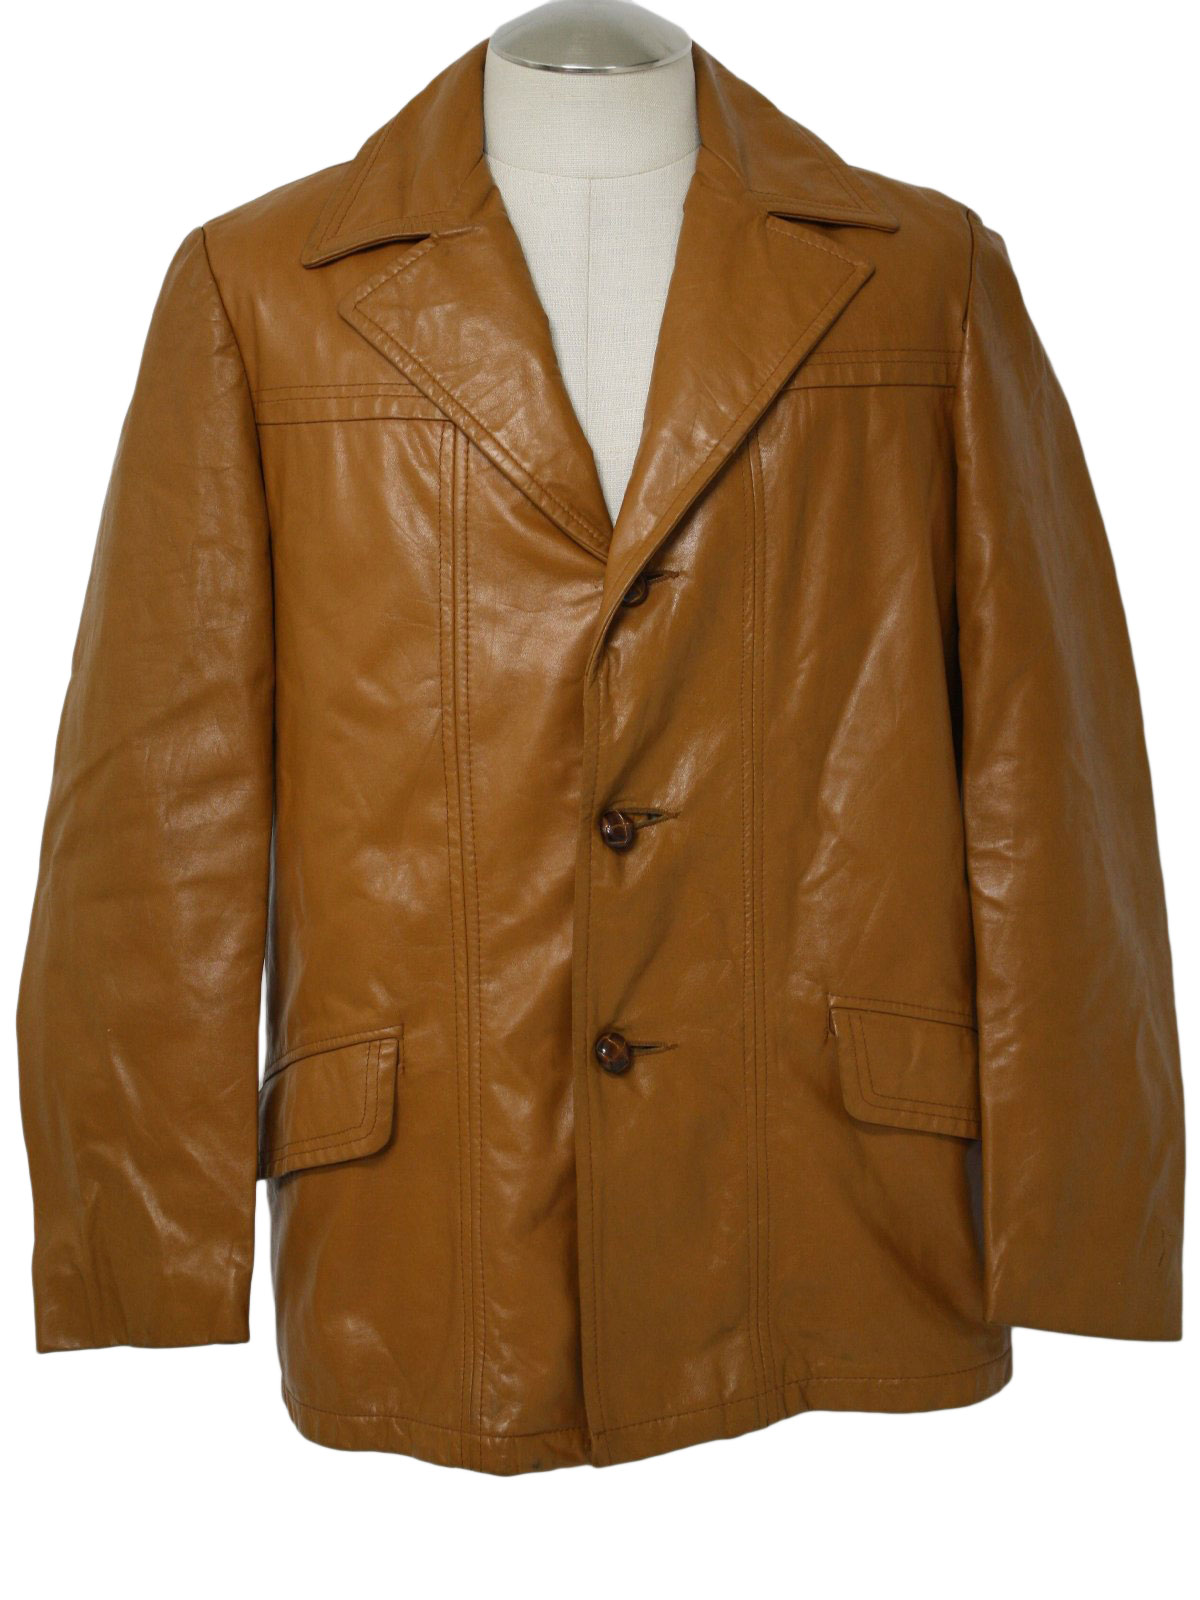 70&39s Vintage Leather Jacket: 70s -Trailmaster- Mens latigo tan